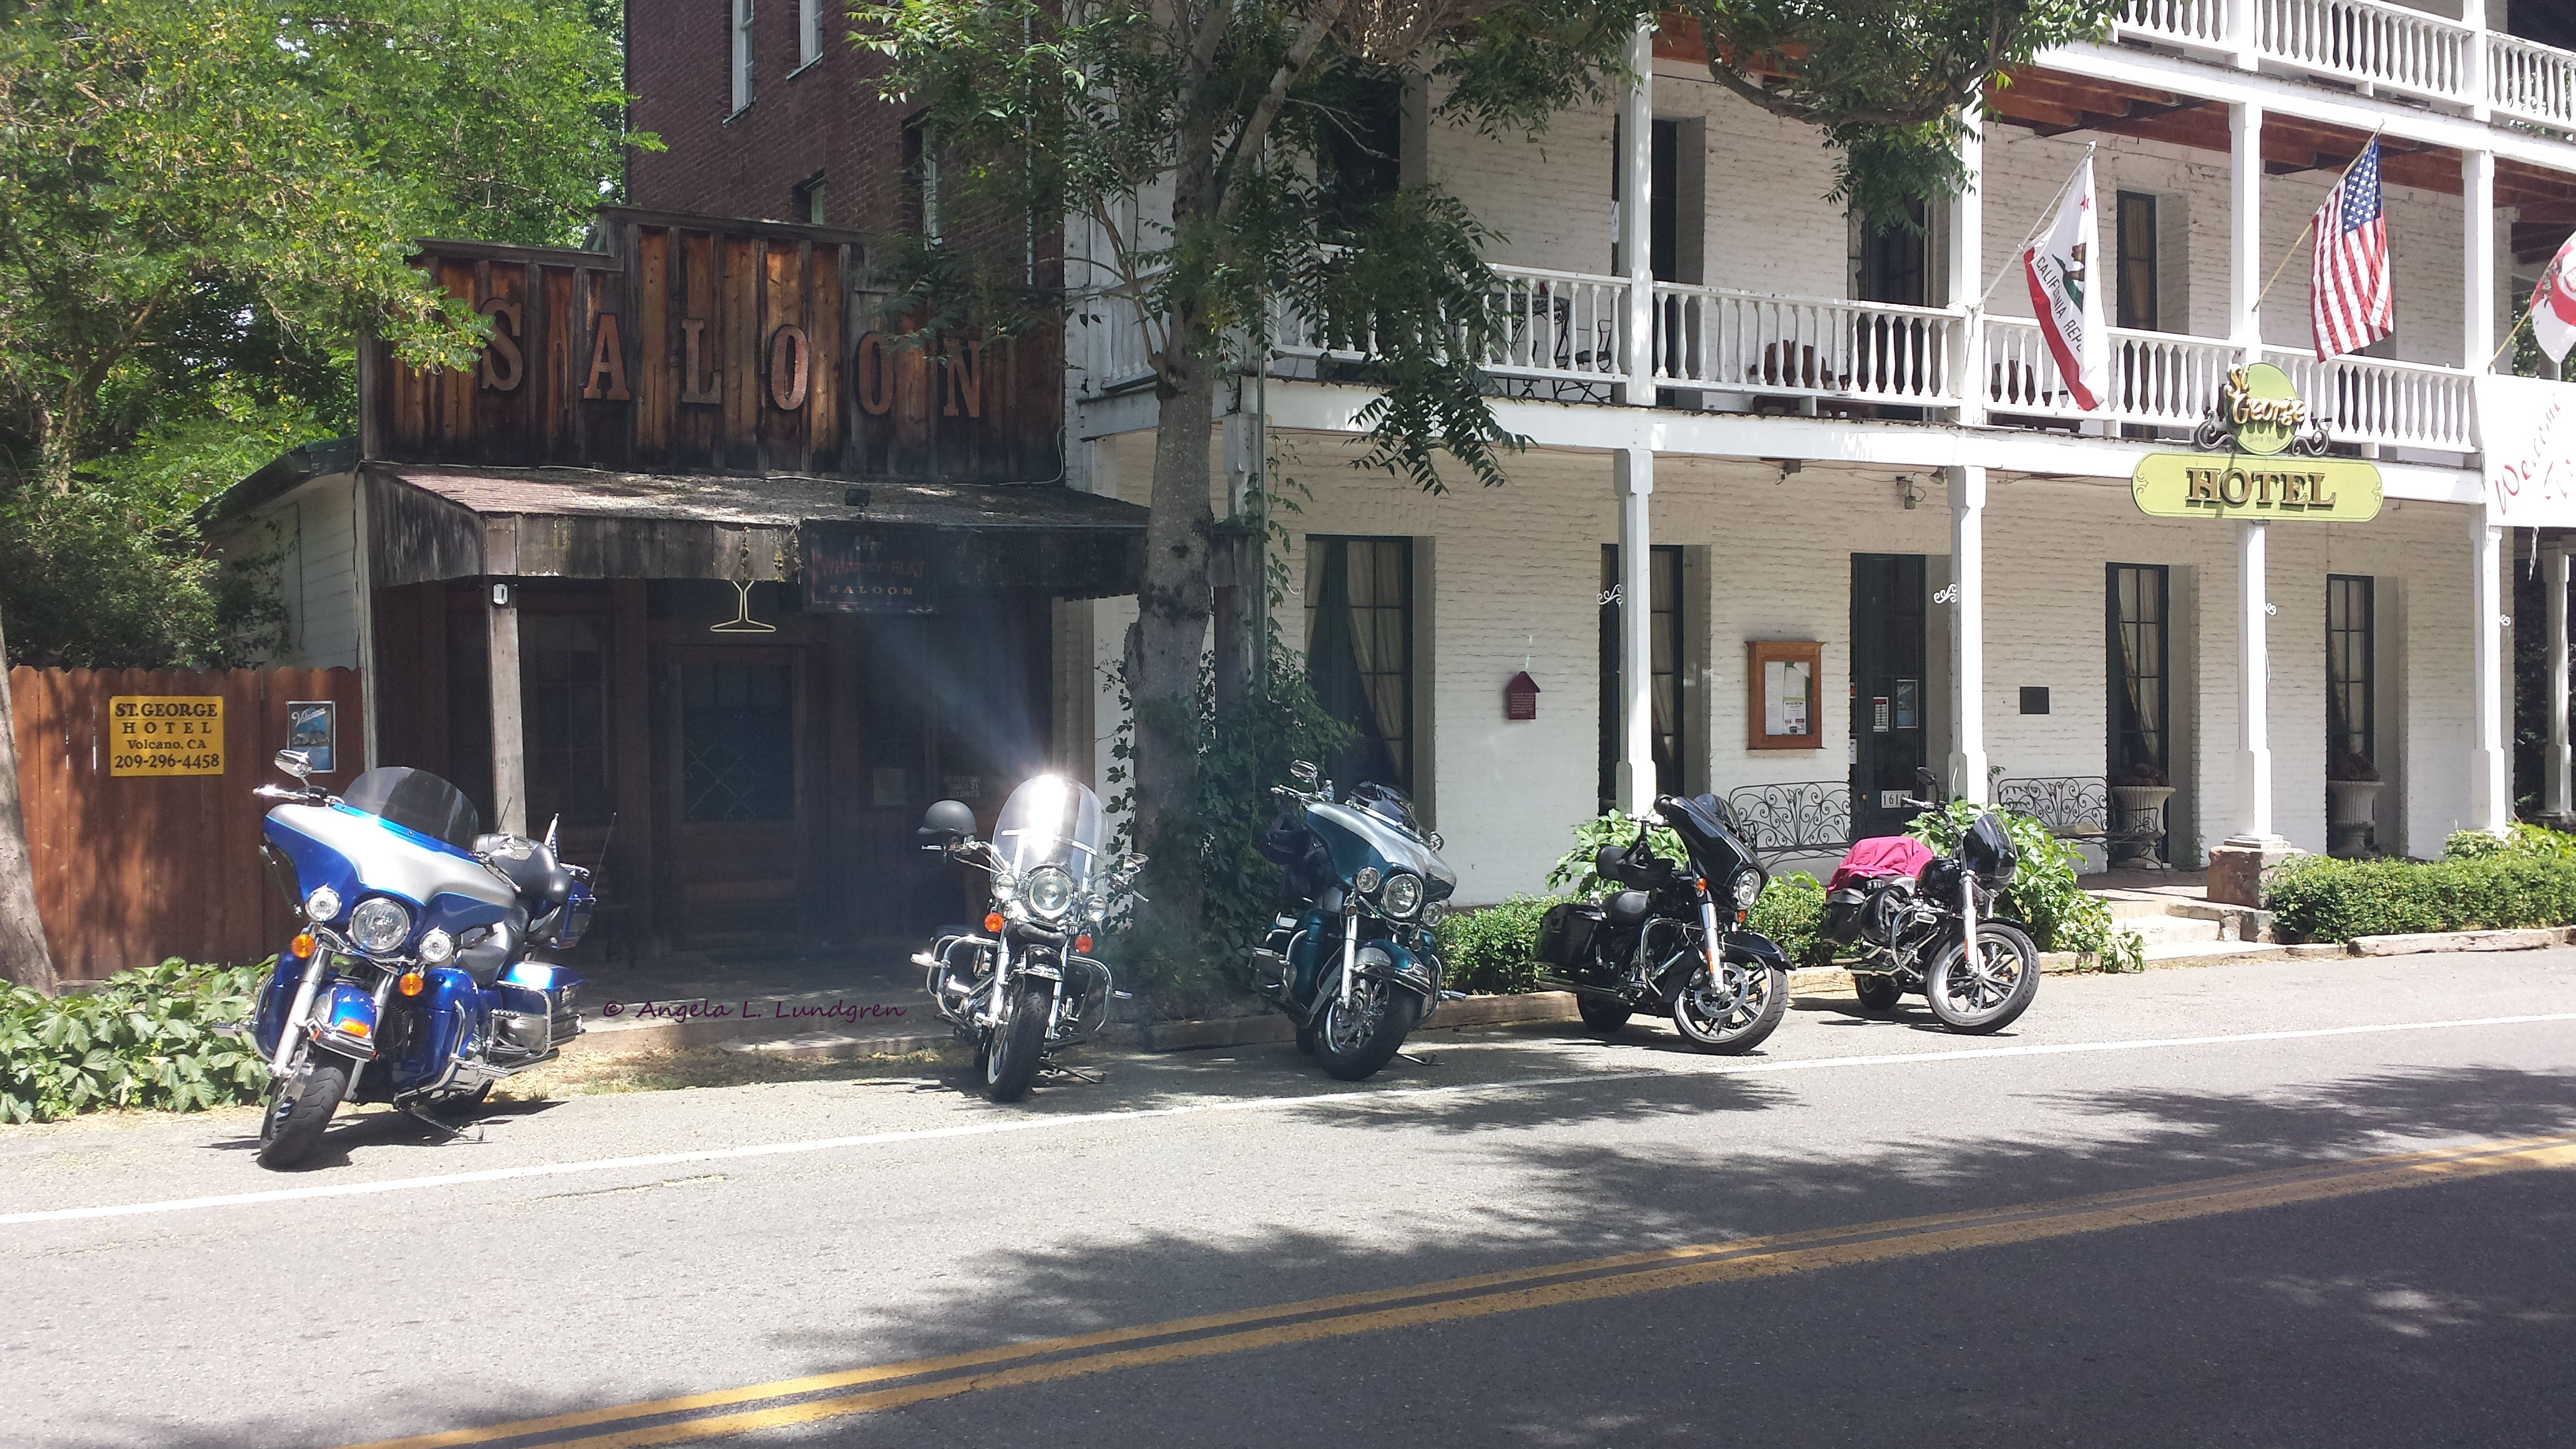 Poker Ride Stop at the Historic St. George Hotel and Whiskey Flat Saloon